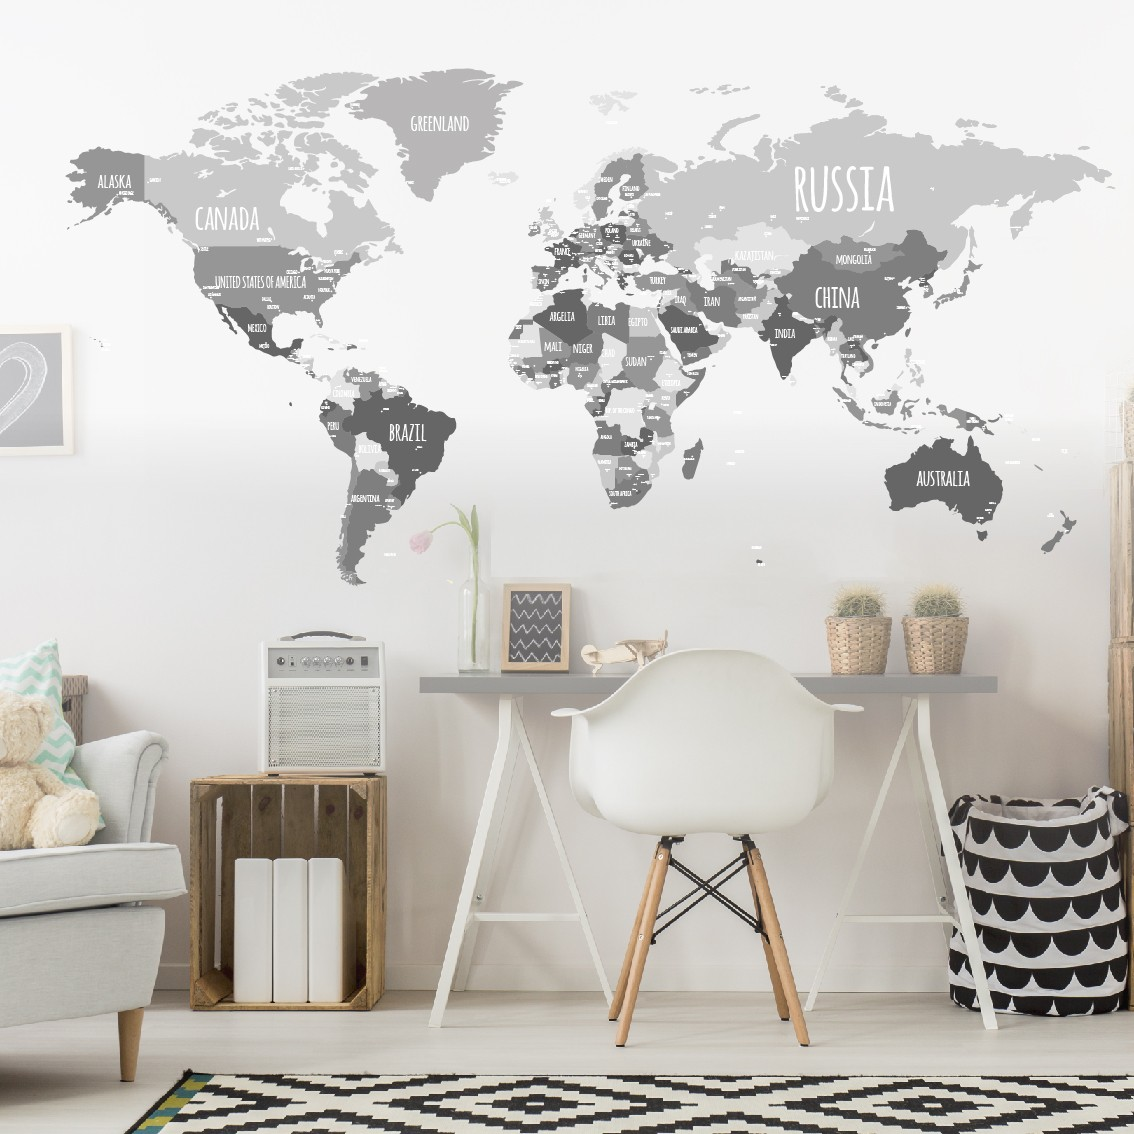 world-map-wall-decal-country-names